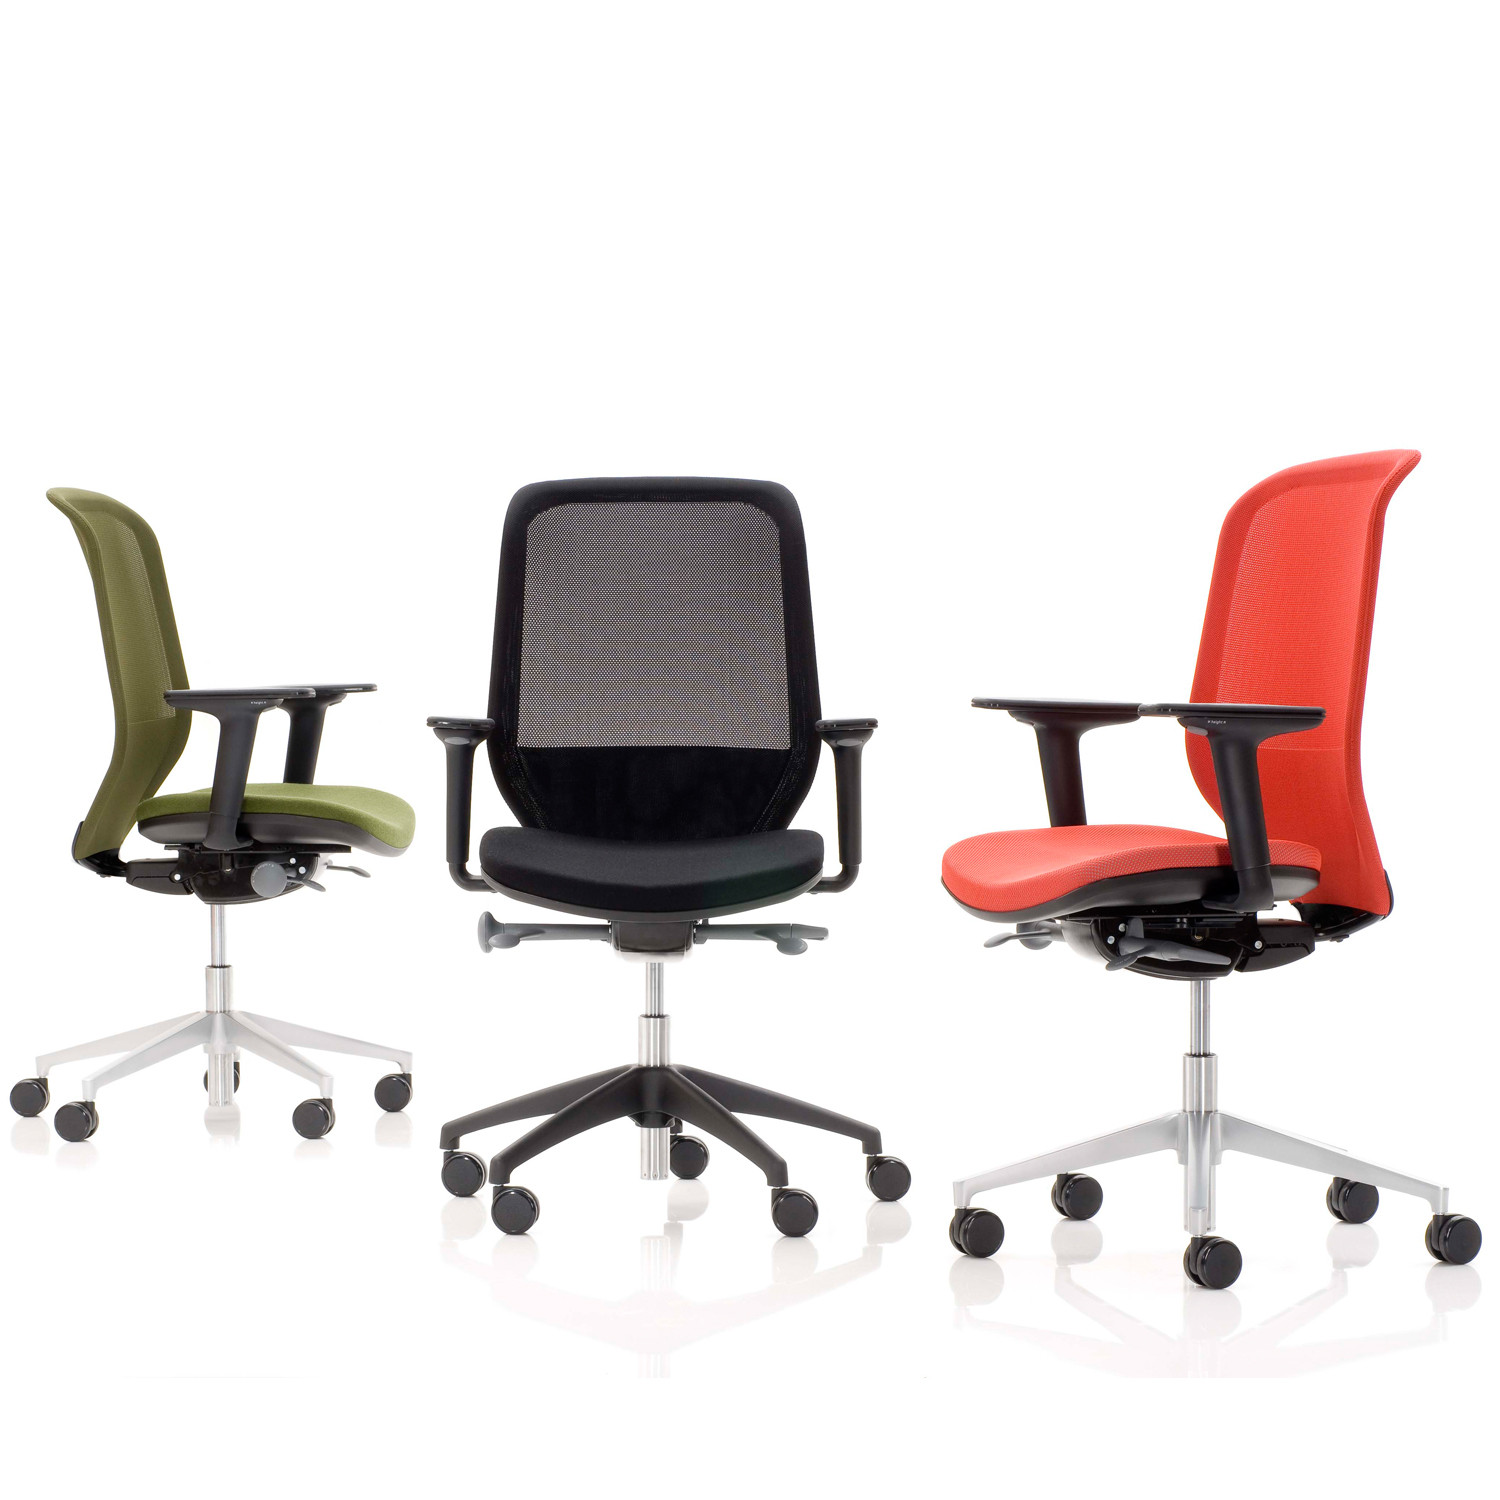 Cheap office chairs cool cheap computer chairs size x for Cheap cool furniture uk